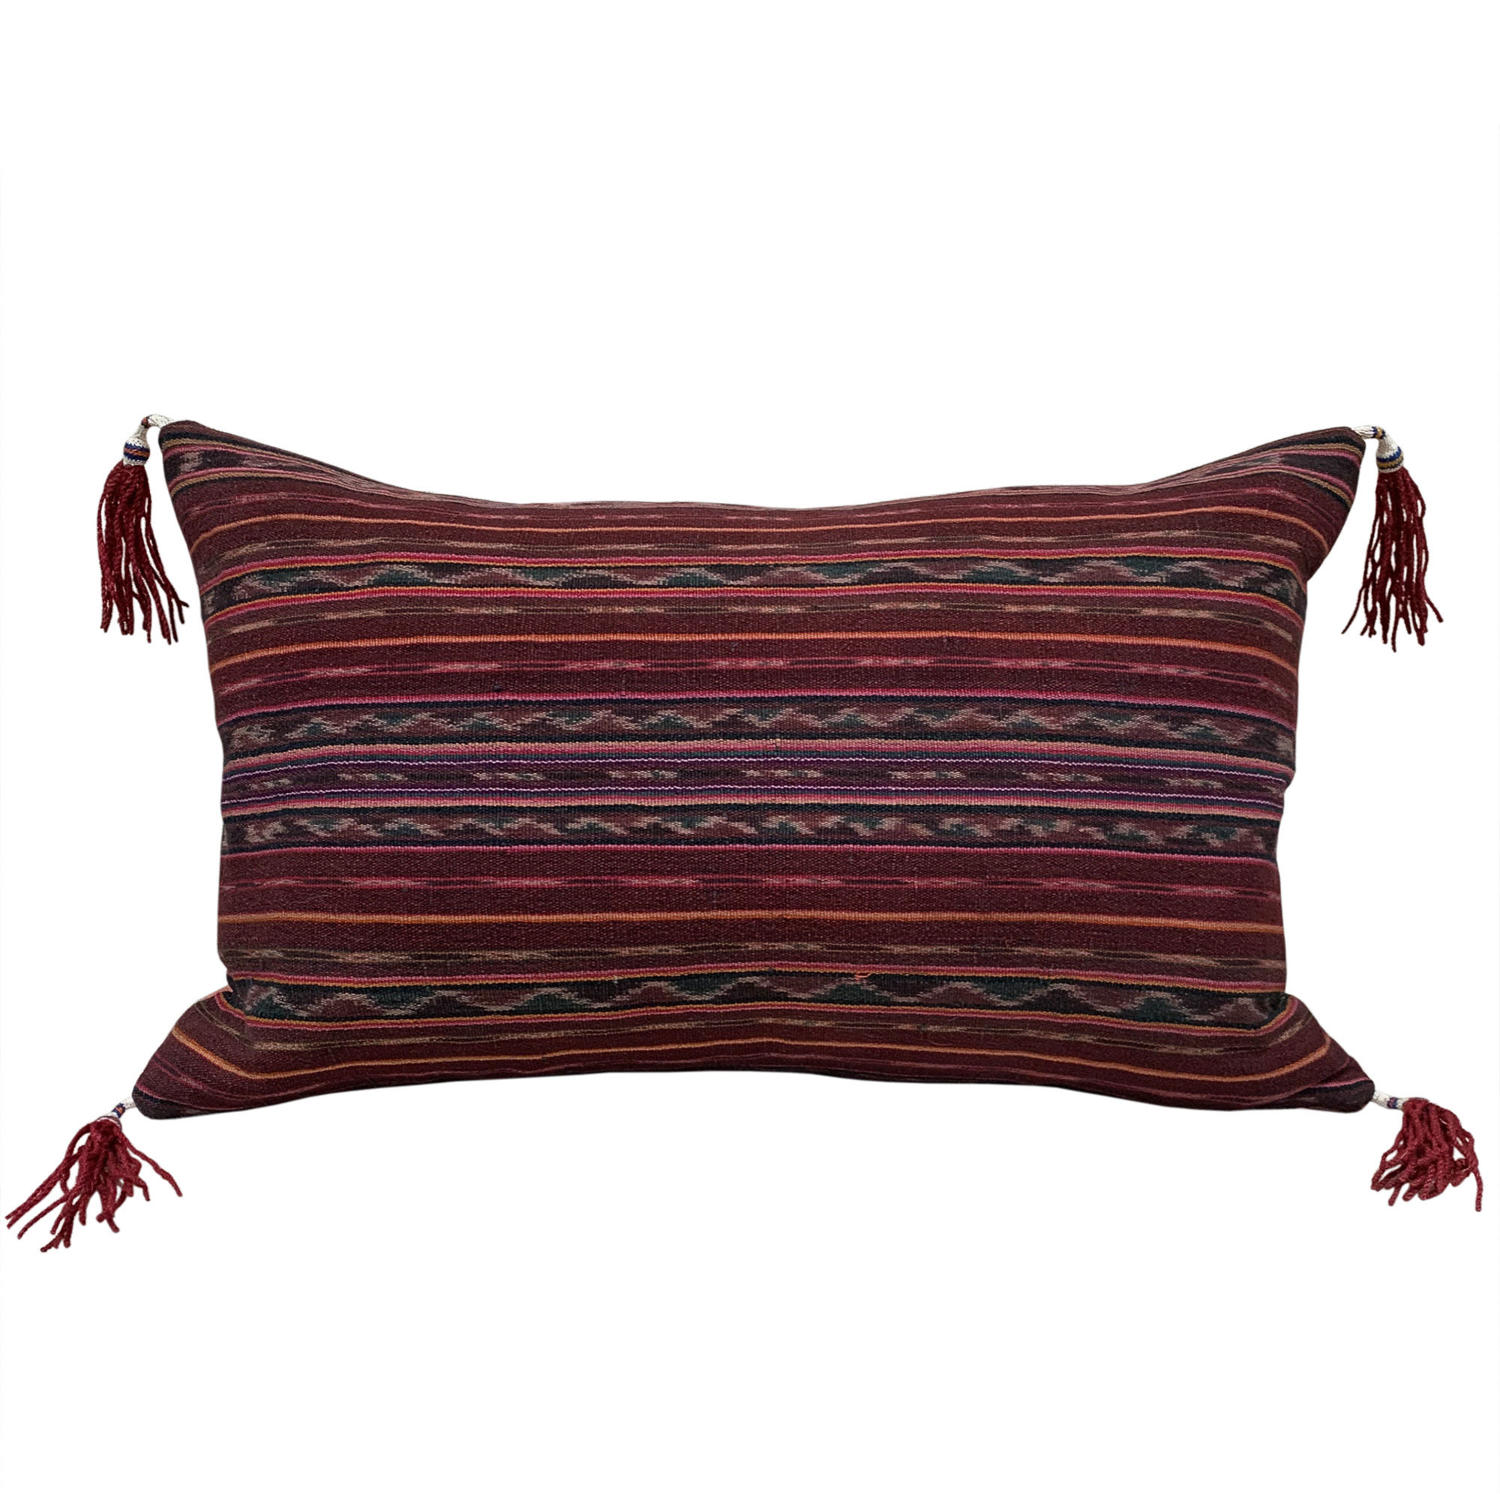 Alor ikat cushion with tassels